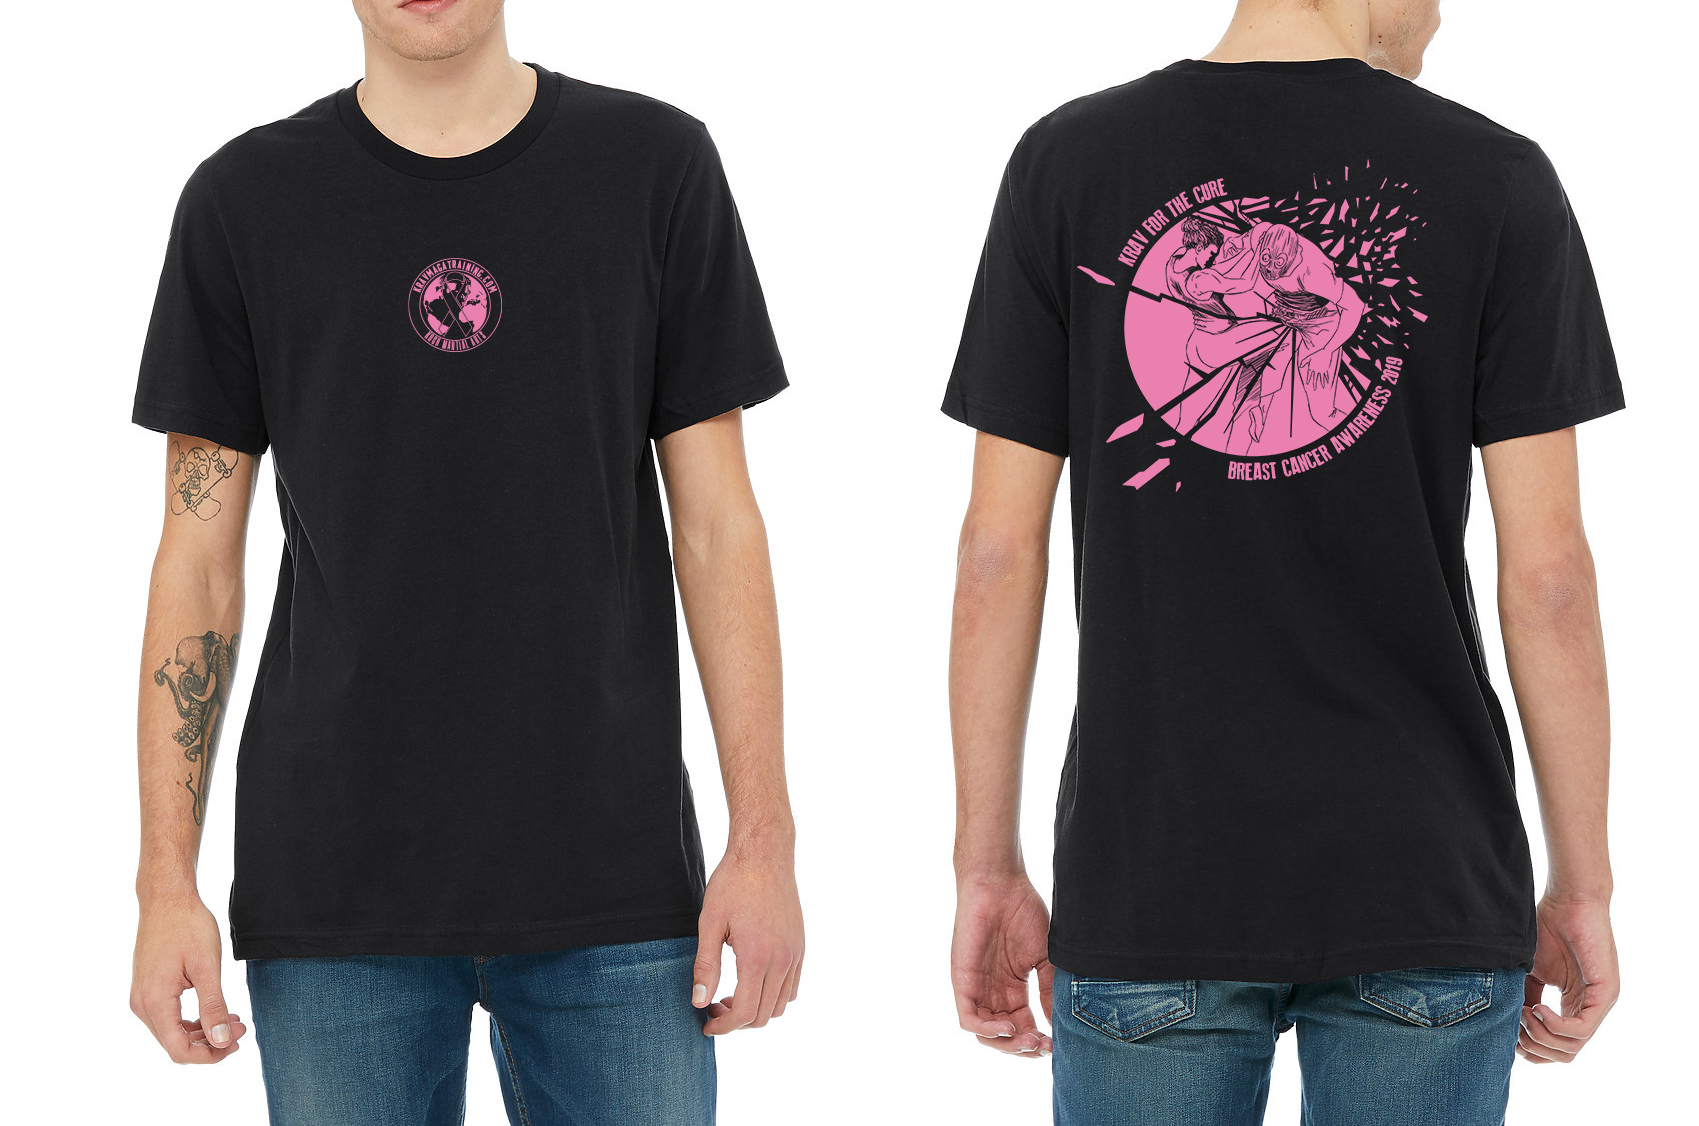 Krav Maga breast cancer awareness shirt 2019